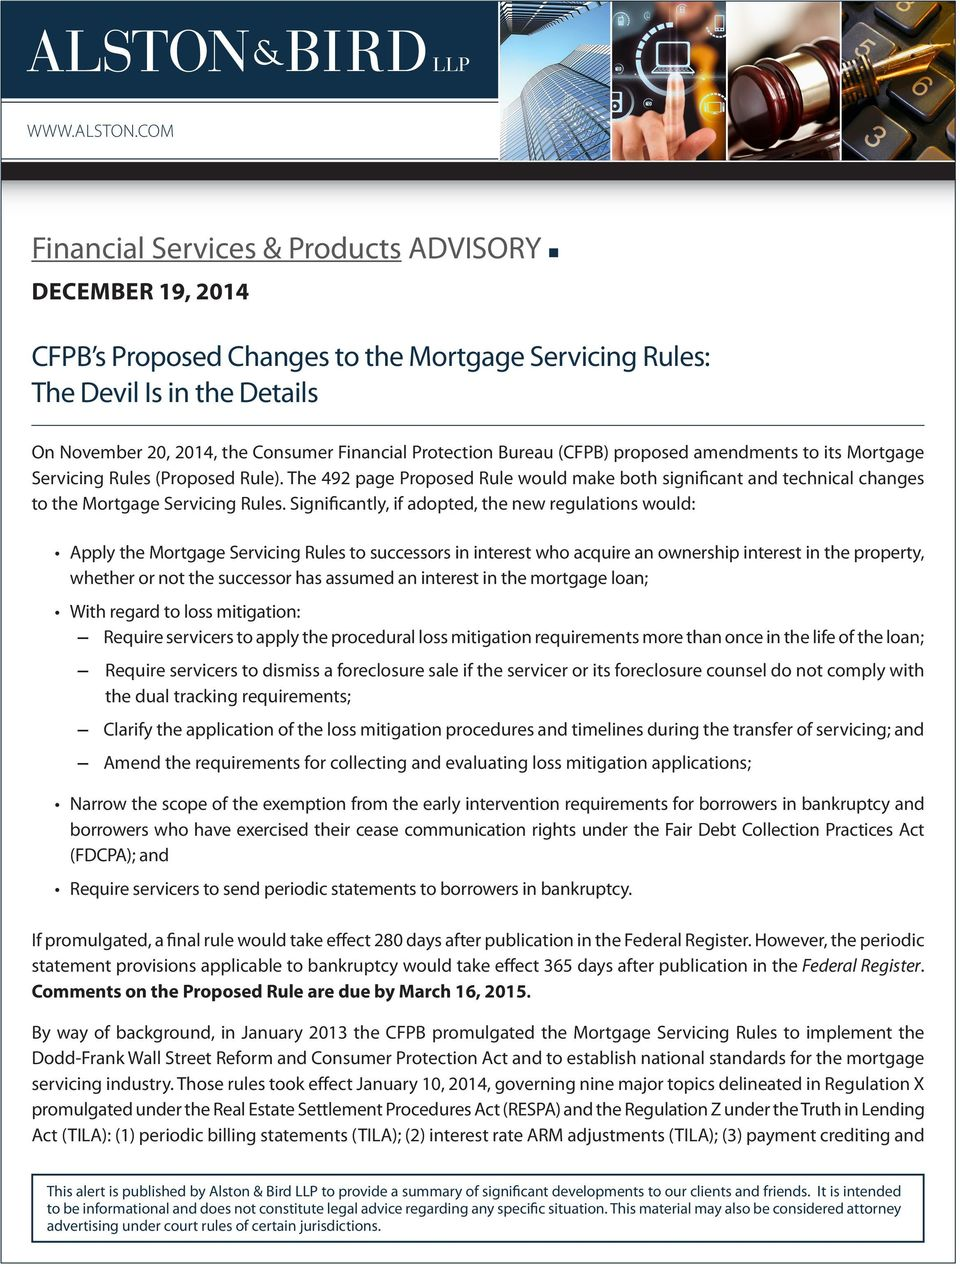 Protection Bureau (CFPB) proposed amendments to its Mortgage Servicing Rules (Proposed Rule).